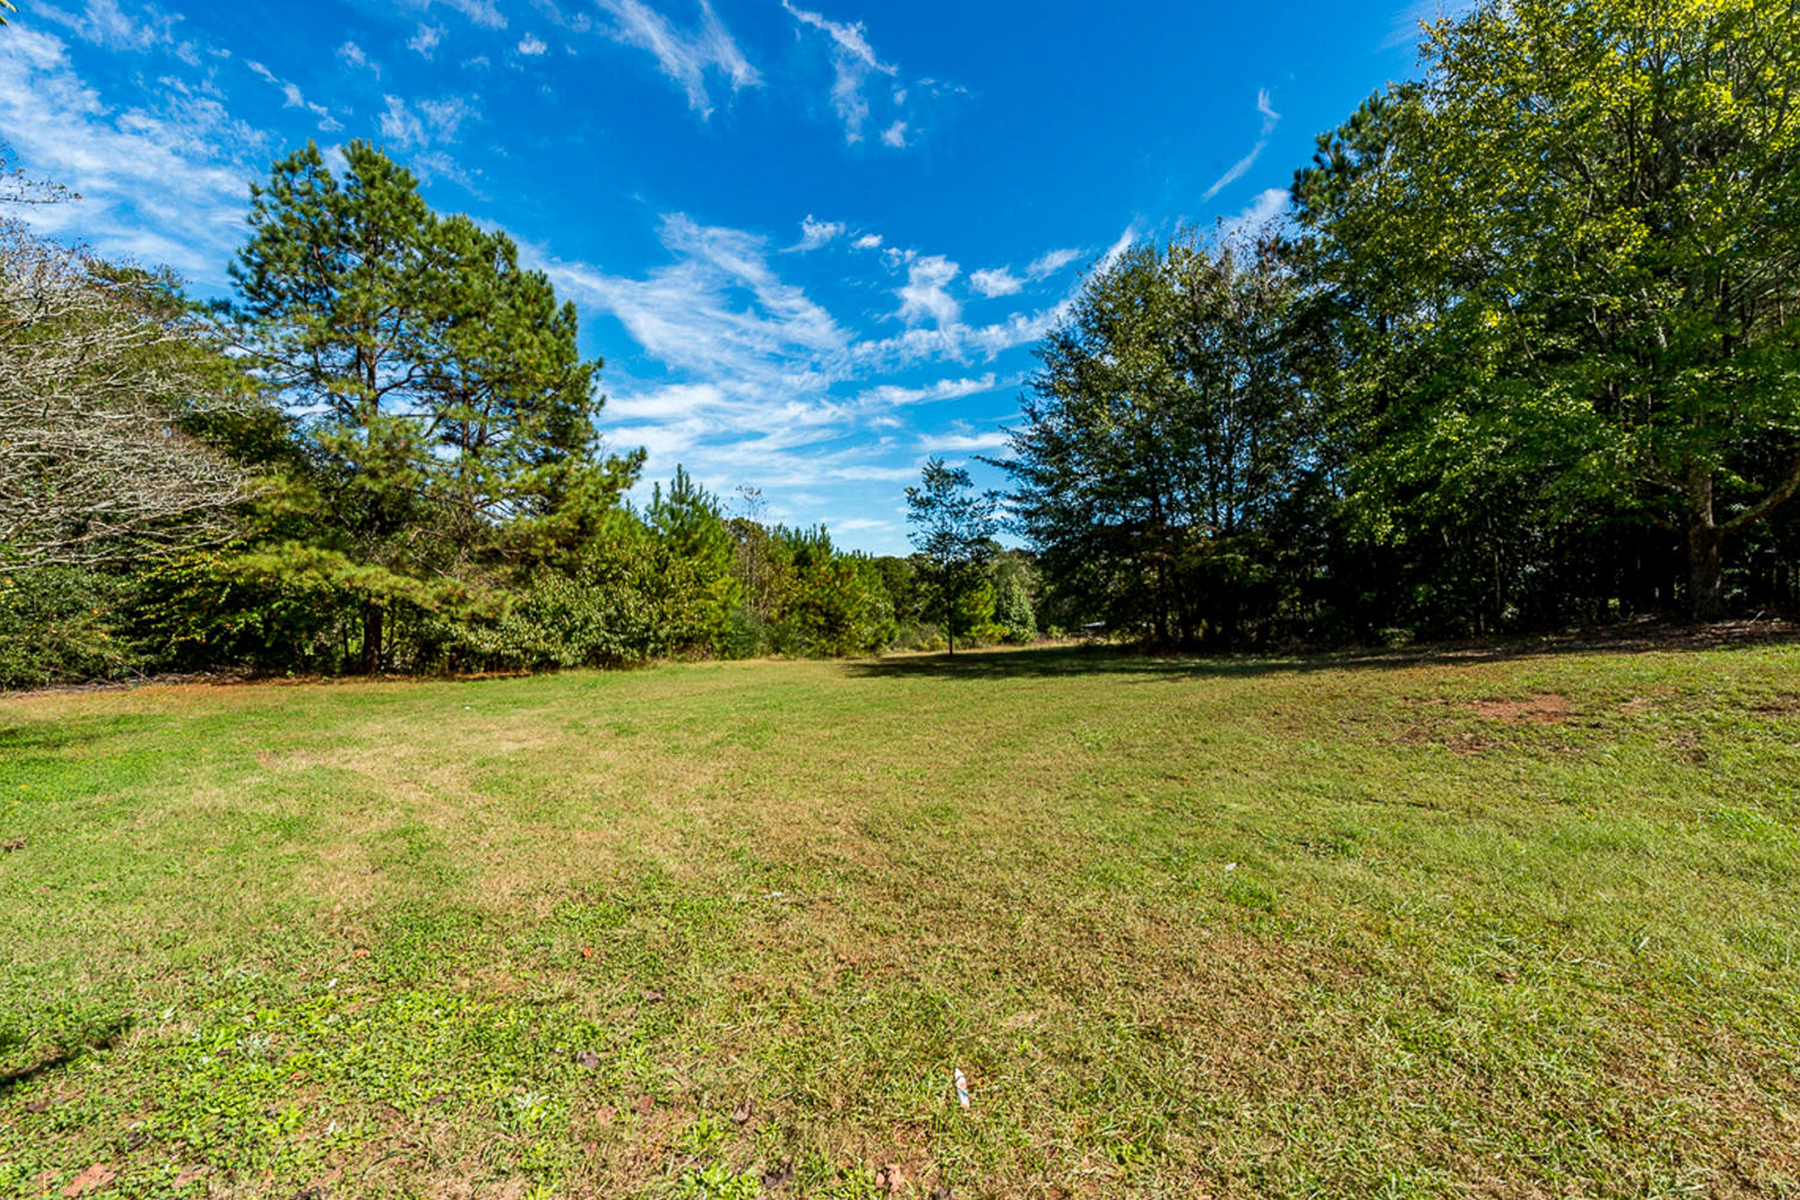 Additional photo for property listing at CLOSE TO TIEC 7423 S Hwy 9 Hwy,  Columbus, North Carolina 28722 United States